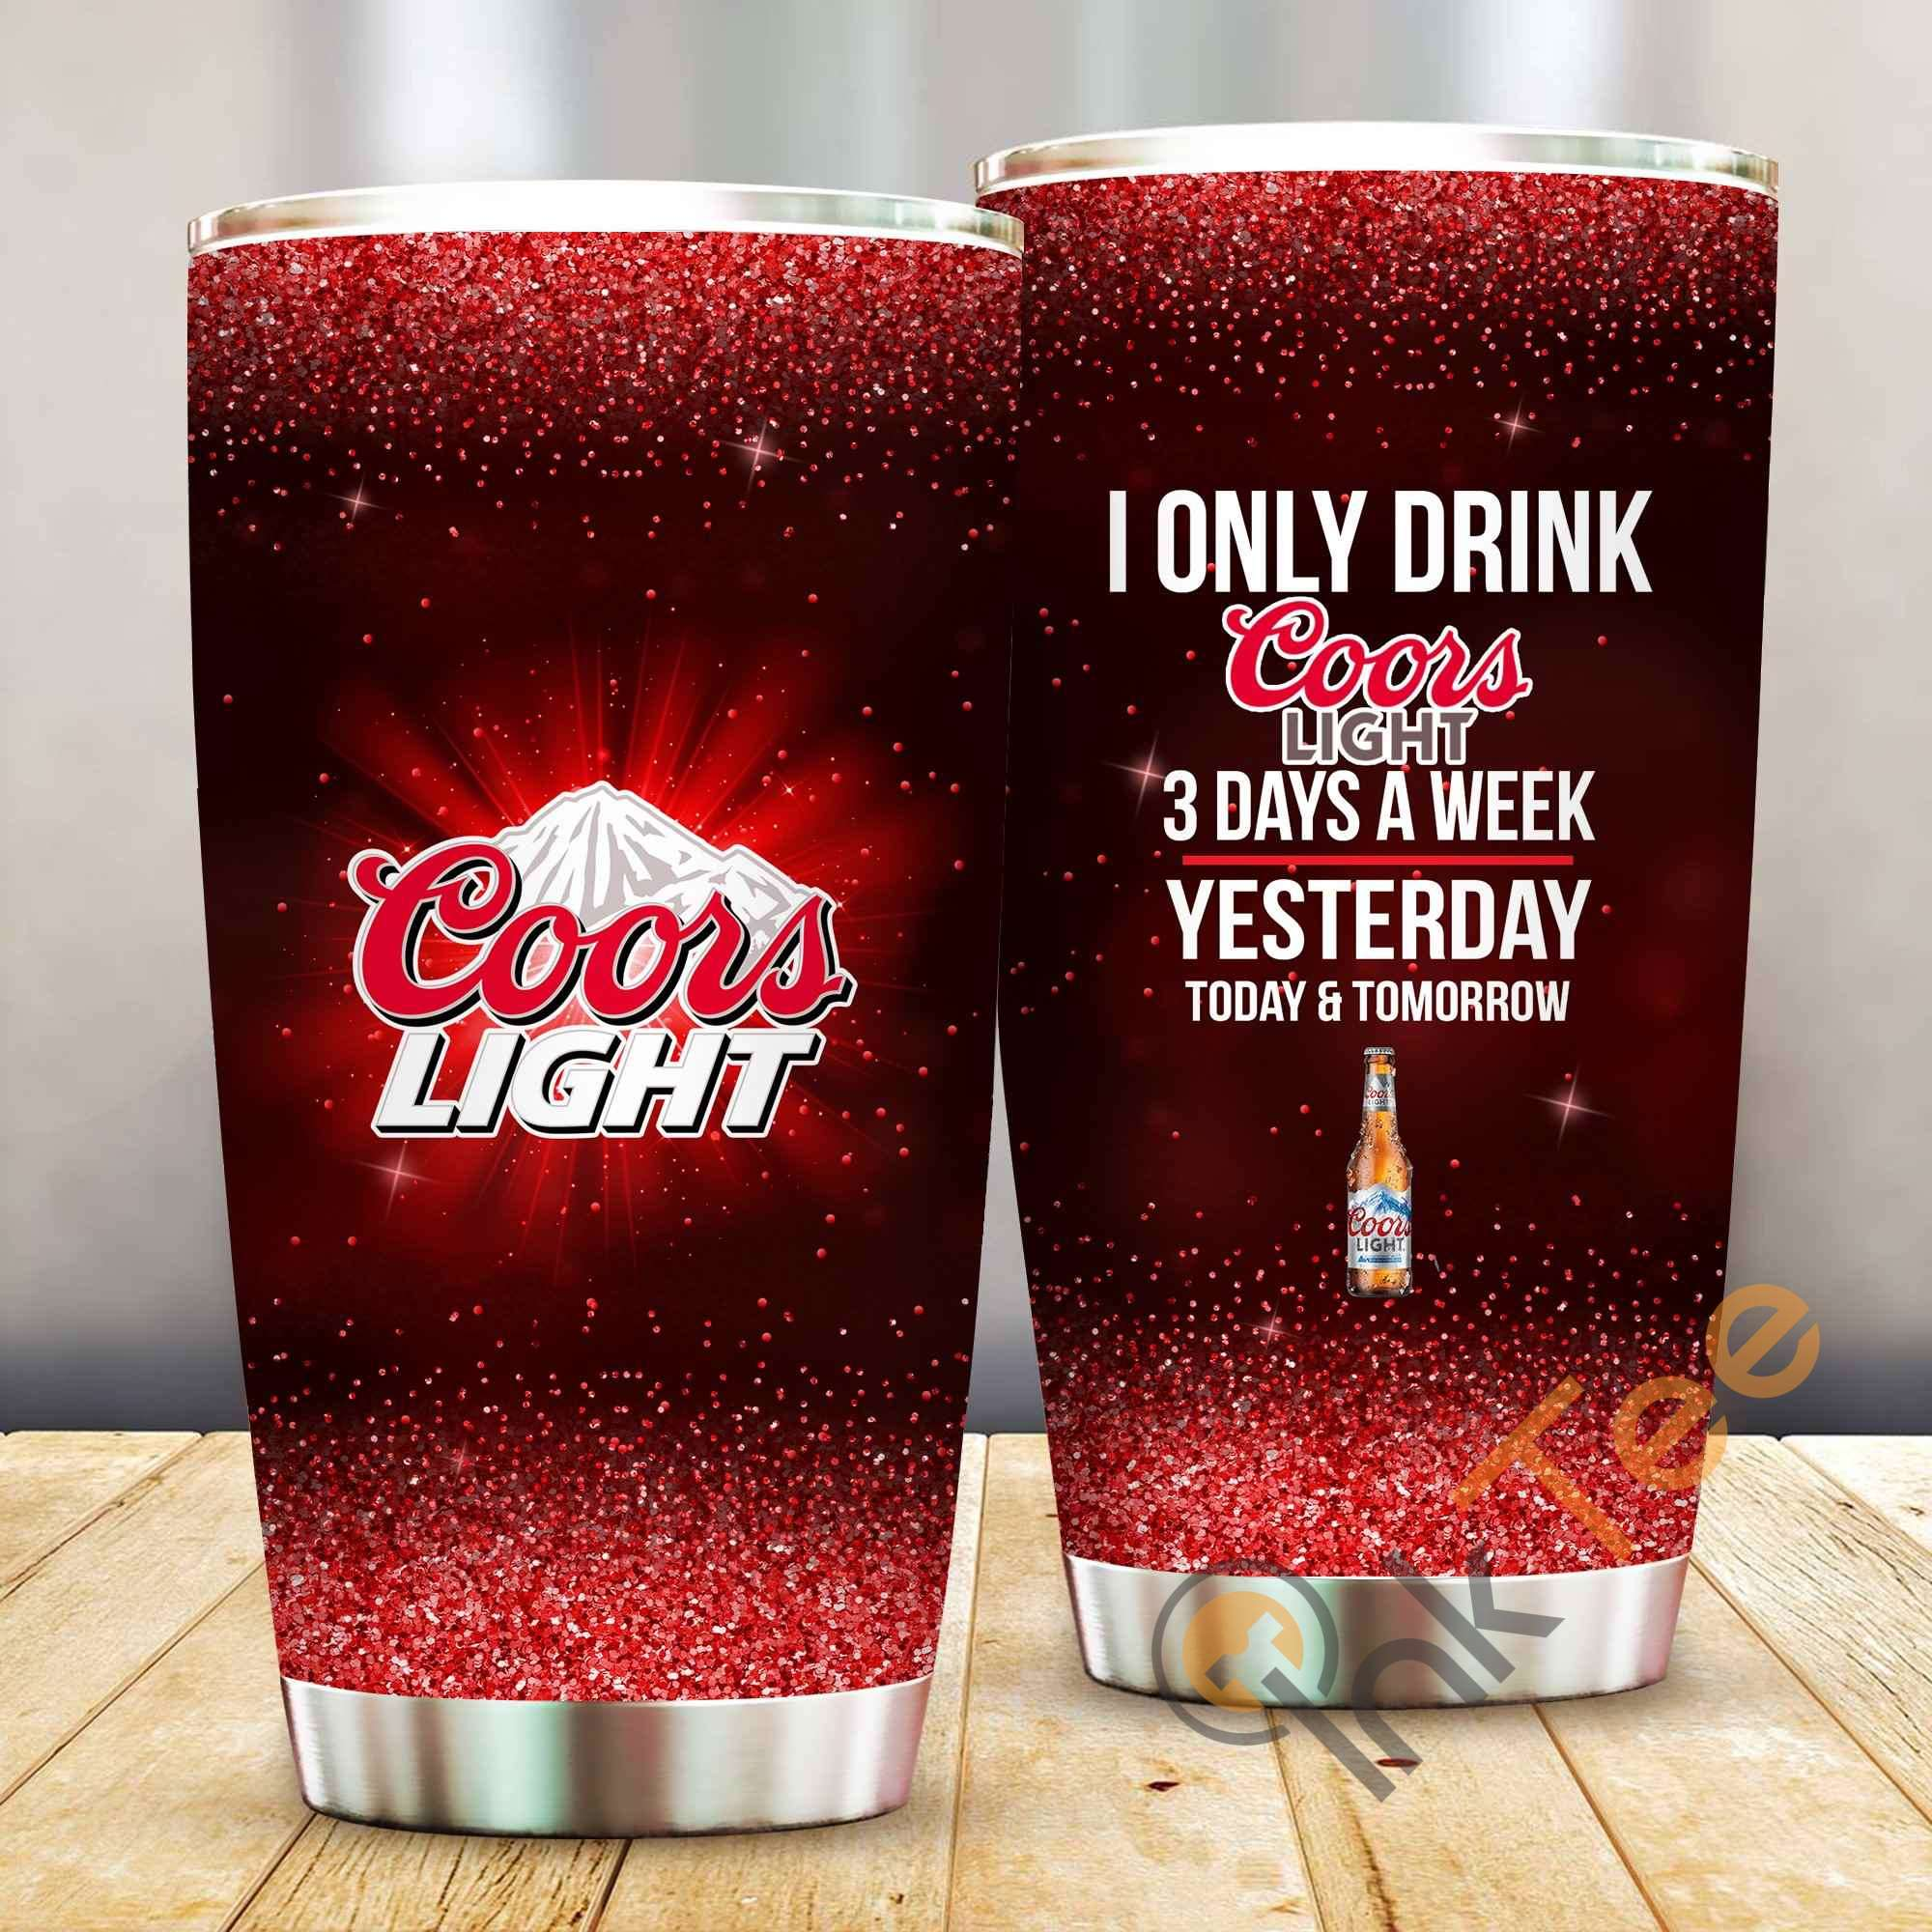 I Only Drink Coors Light 3 Days A Week Amazon Best Seller Sku 4047 Stainless Steel Tumbler